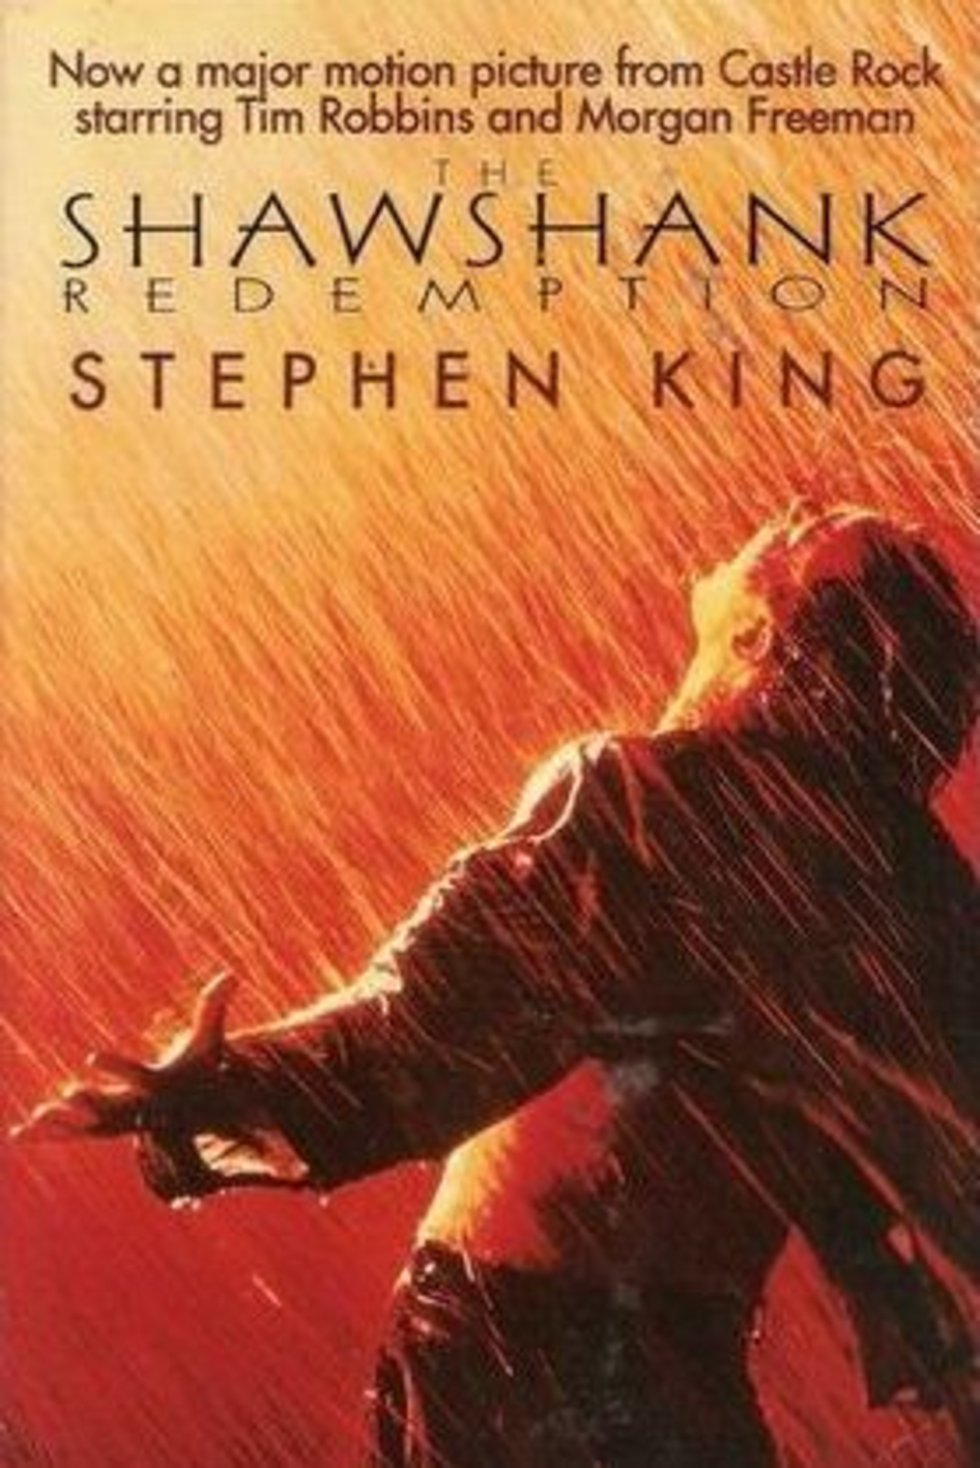 shawshank redemption essay hope king for a year rita hayworth and  king for a year rita hayworth and shawshank redemption reviewed rita hayworth and shawshank redemption reviewed shawshank redemption essays hope